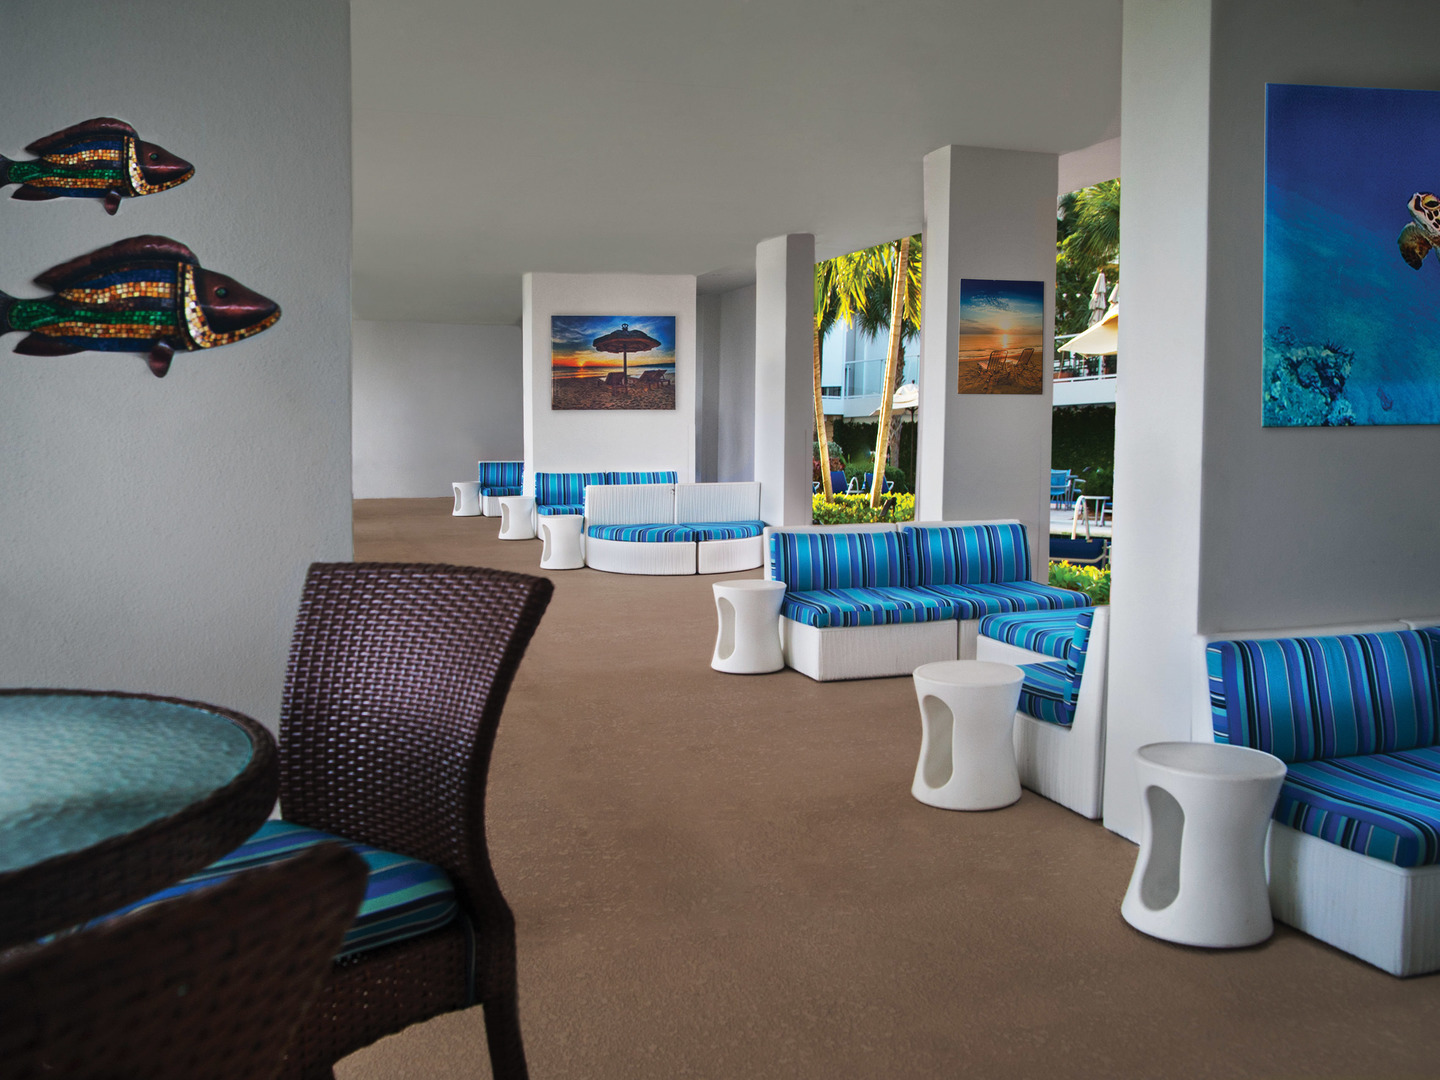 Marriott's Crystal Shores The Breezeway. Marriott's Crystal Shores is located in Marco Island, Florida United States.